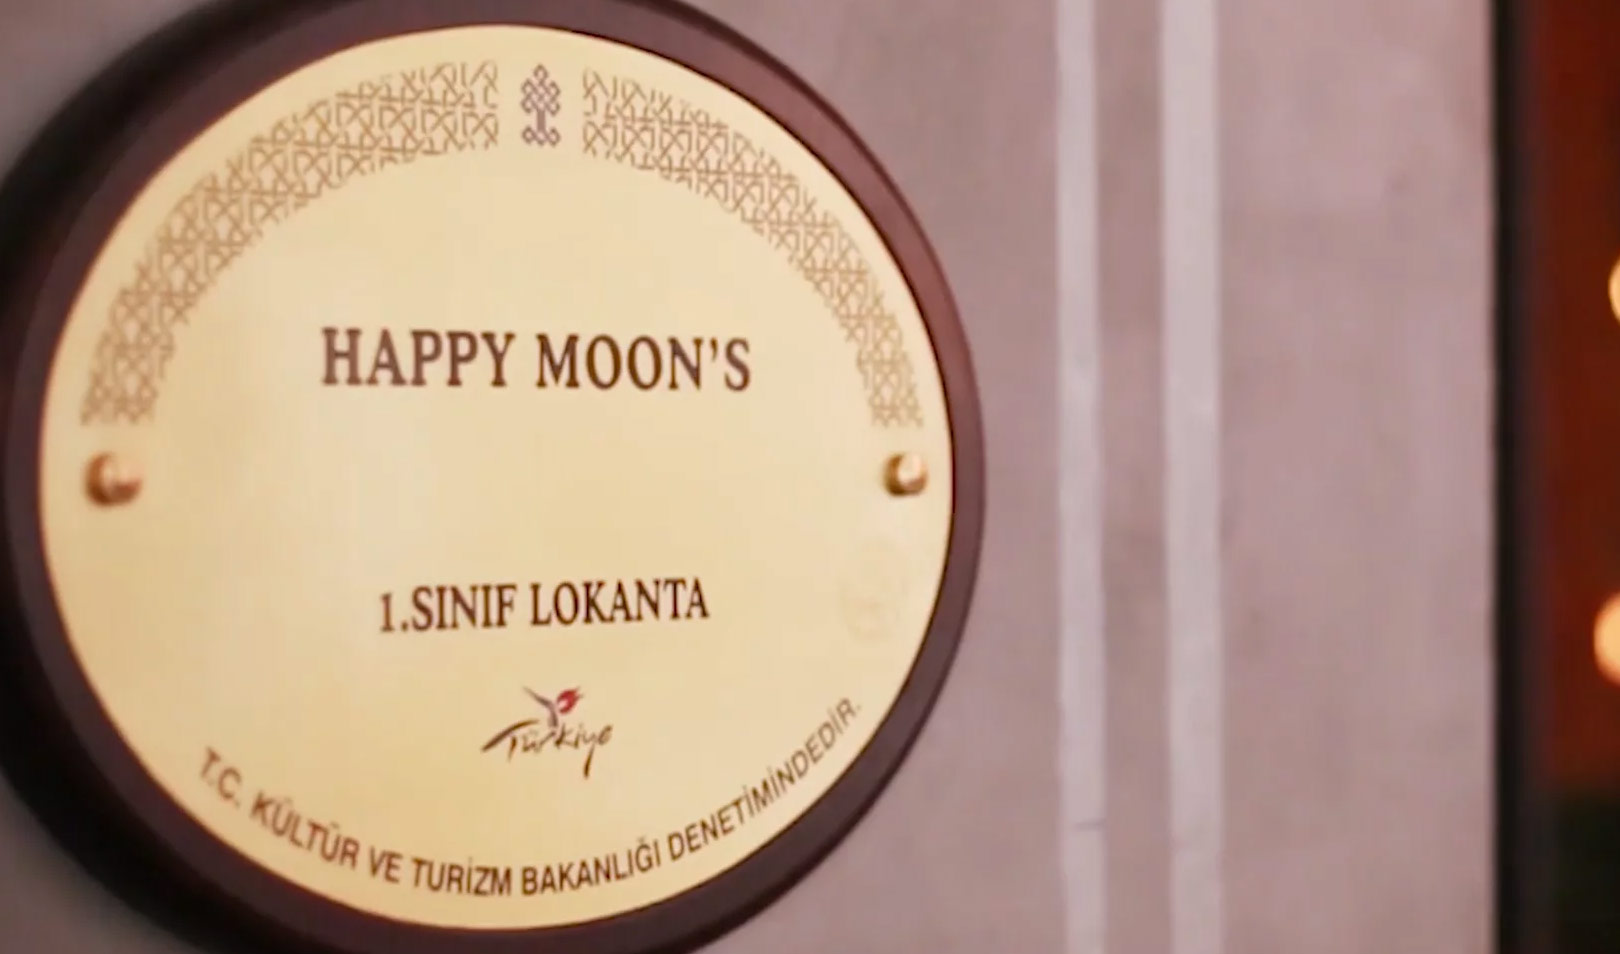 HAPPY MOONS CAFE - Sosyal Medya Filmi